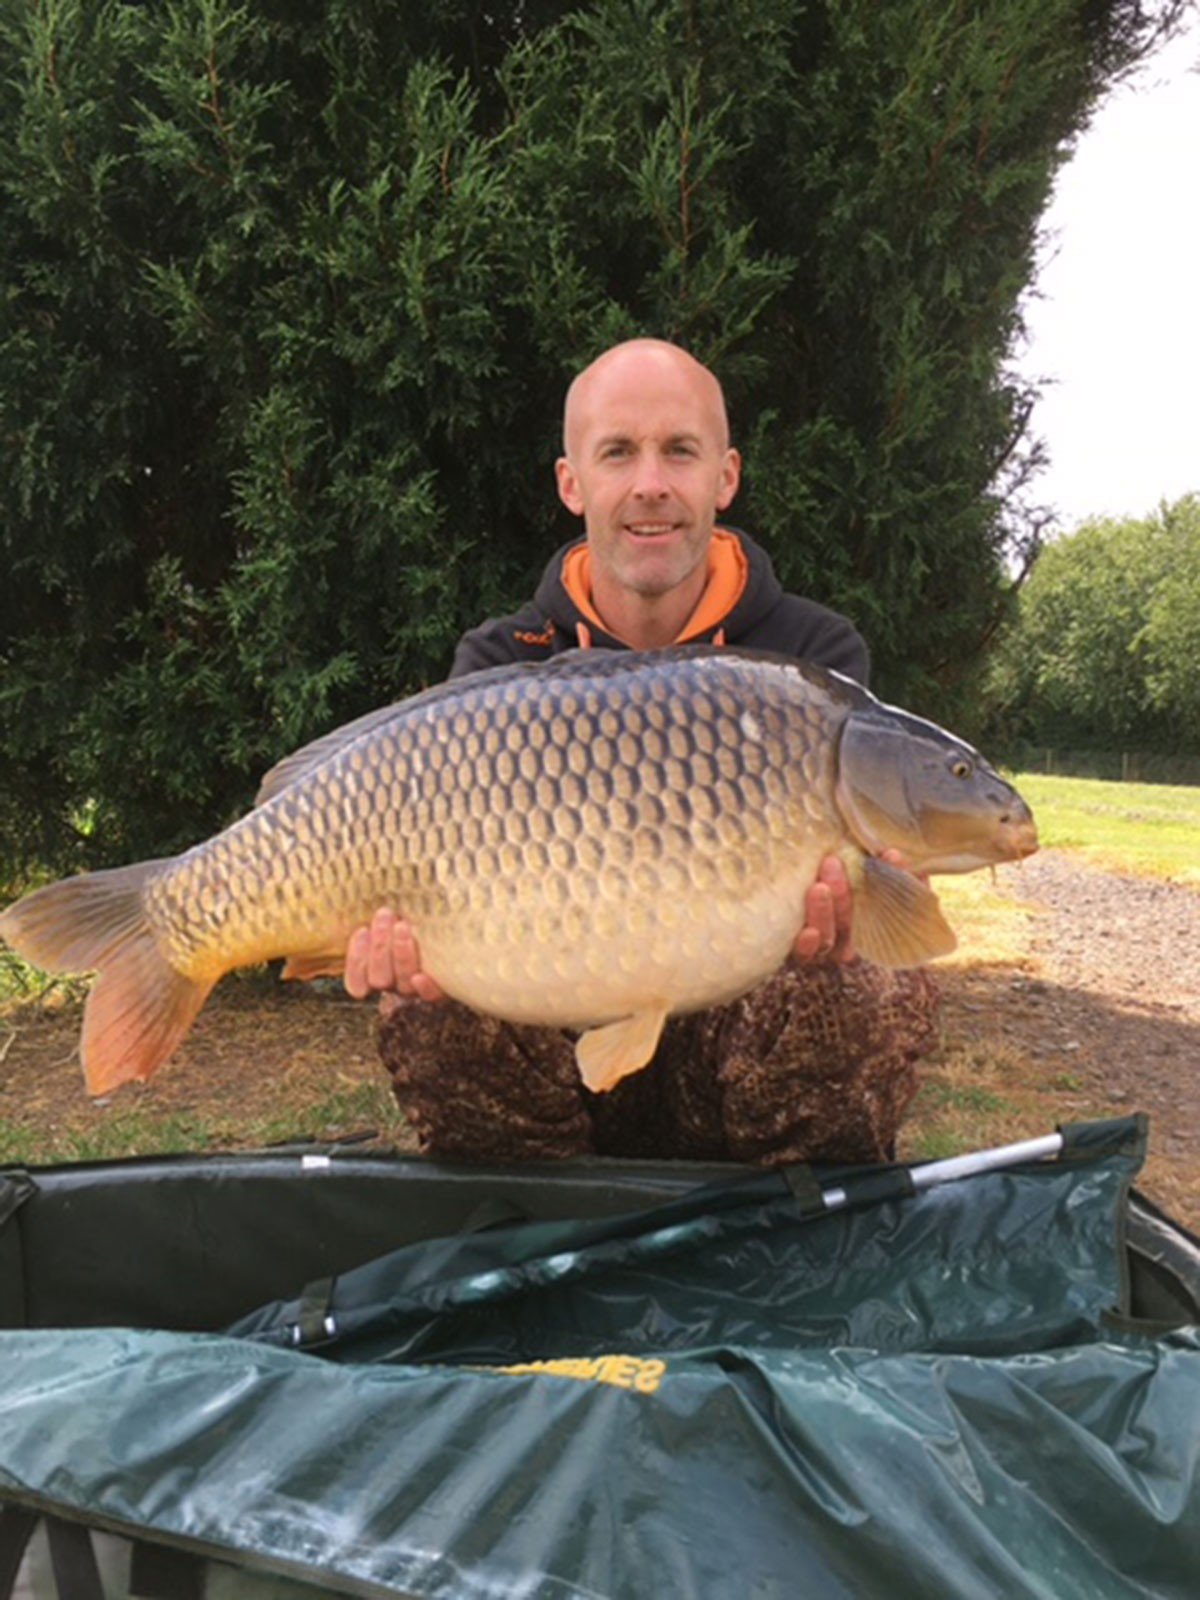 J Whiteman holding a 29-00 from RH Fisheries